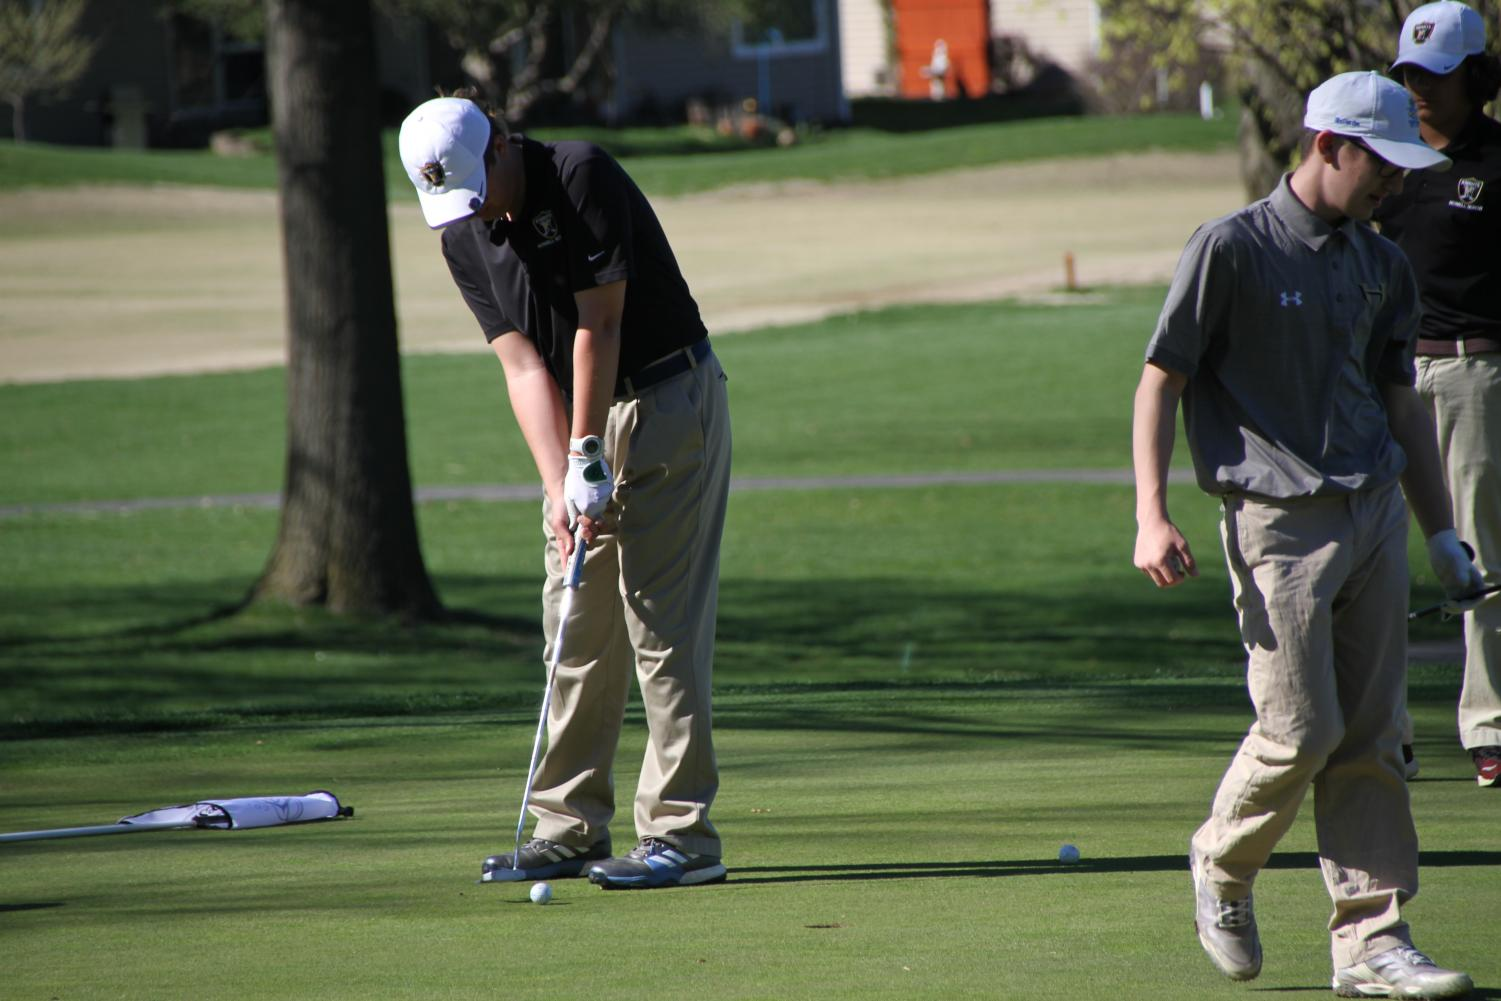 A Knight golfer putts a ball on the green in a competition.